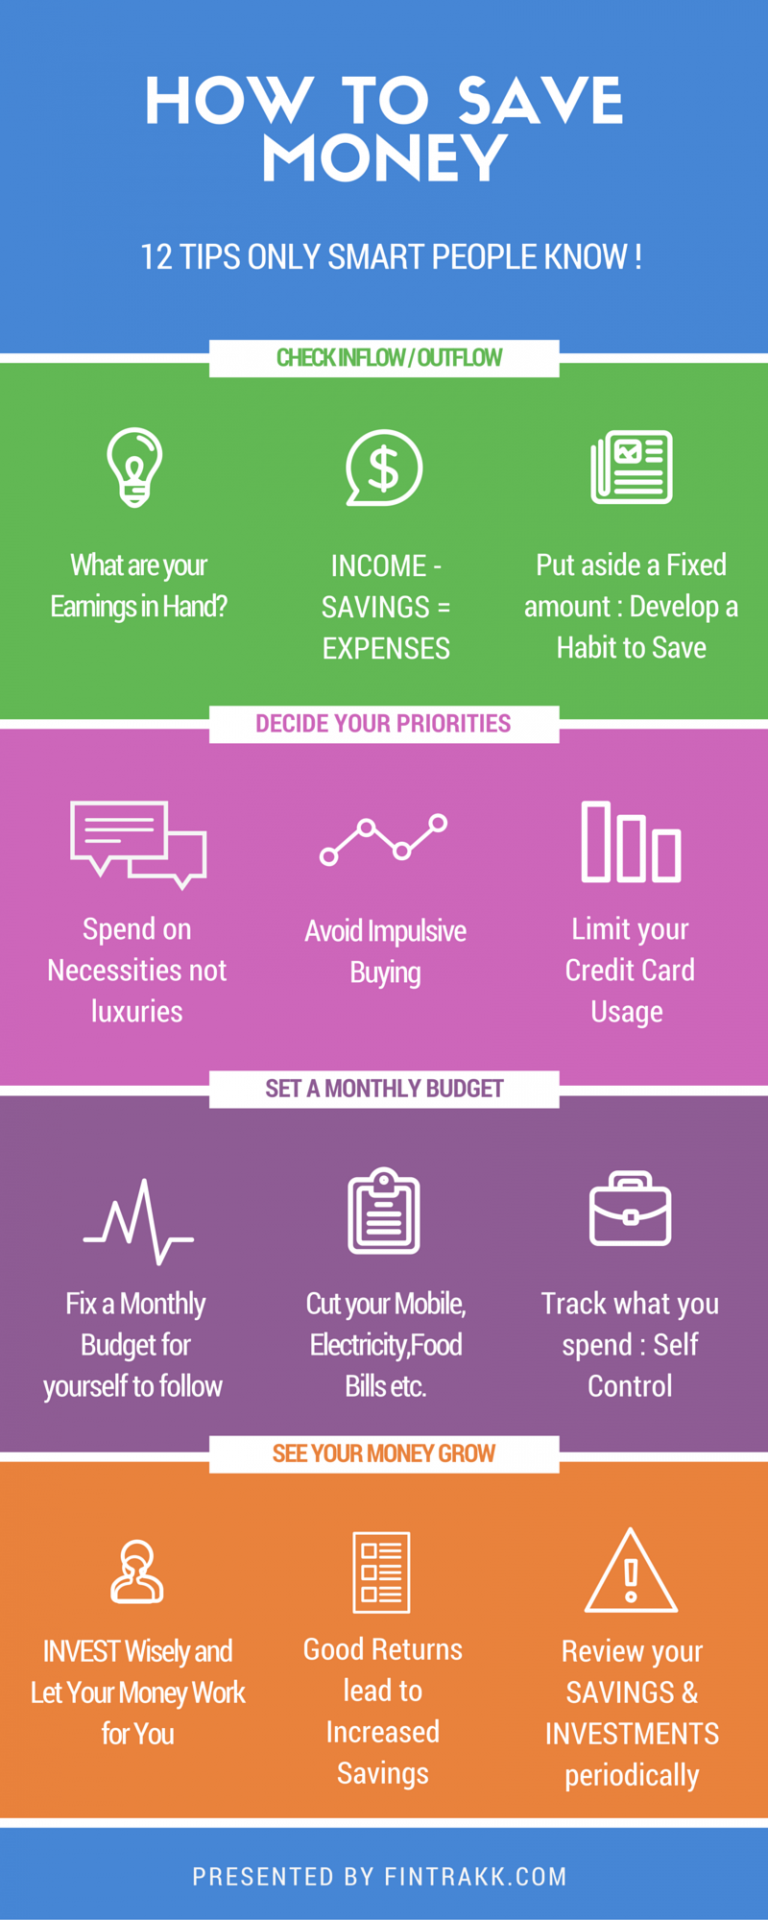 How To Save Money? 12 Tips Only Smart People Know! #infographic #Save Money #Tips #How To Save Money